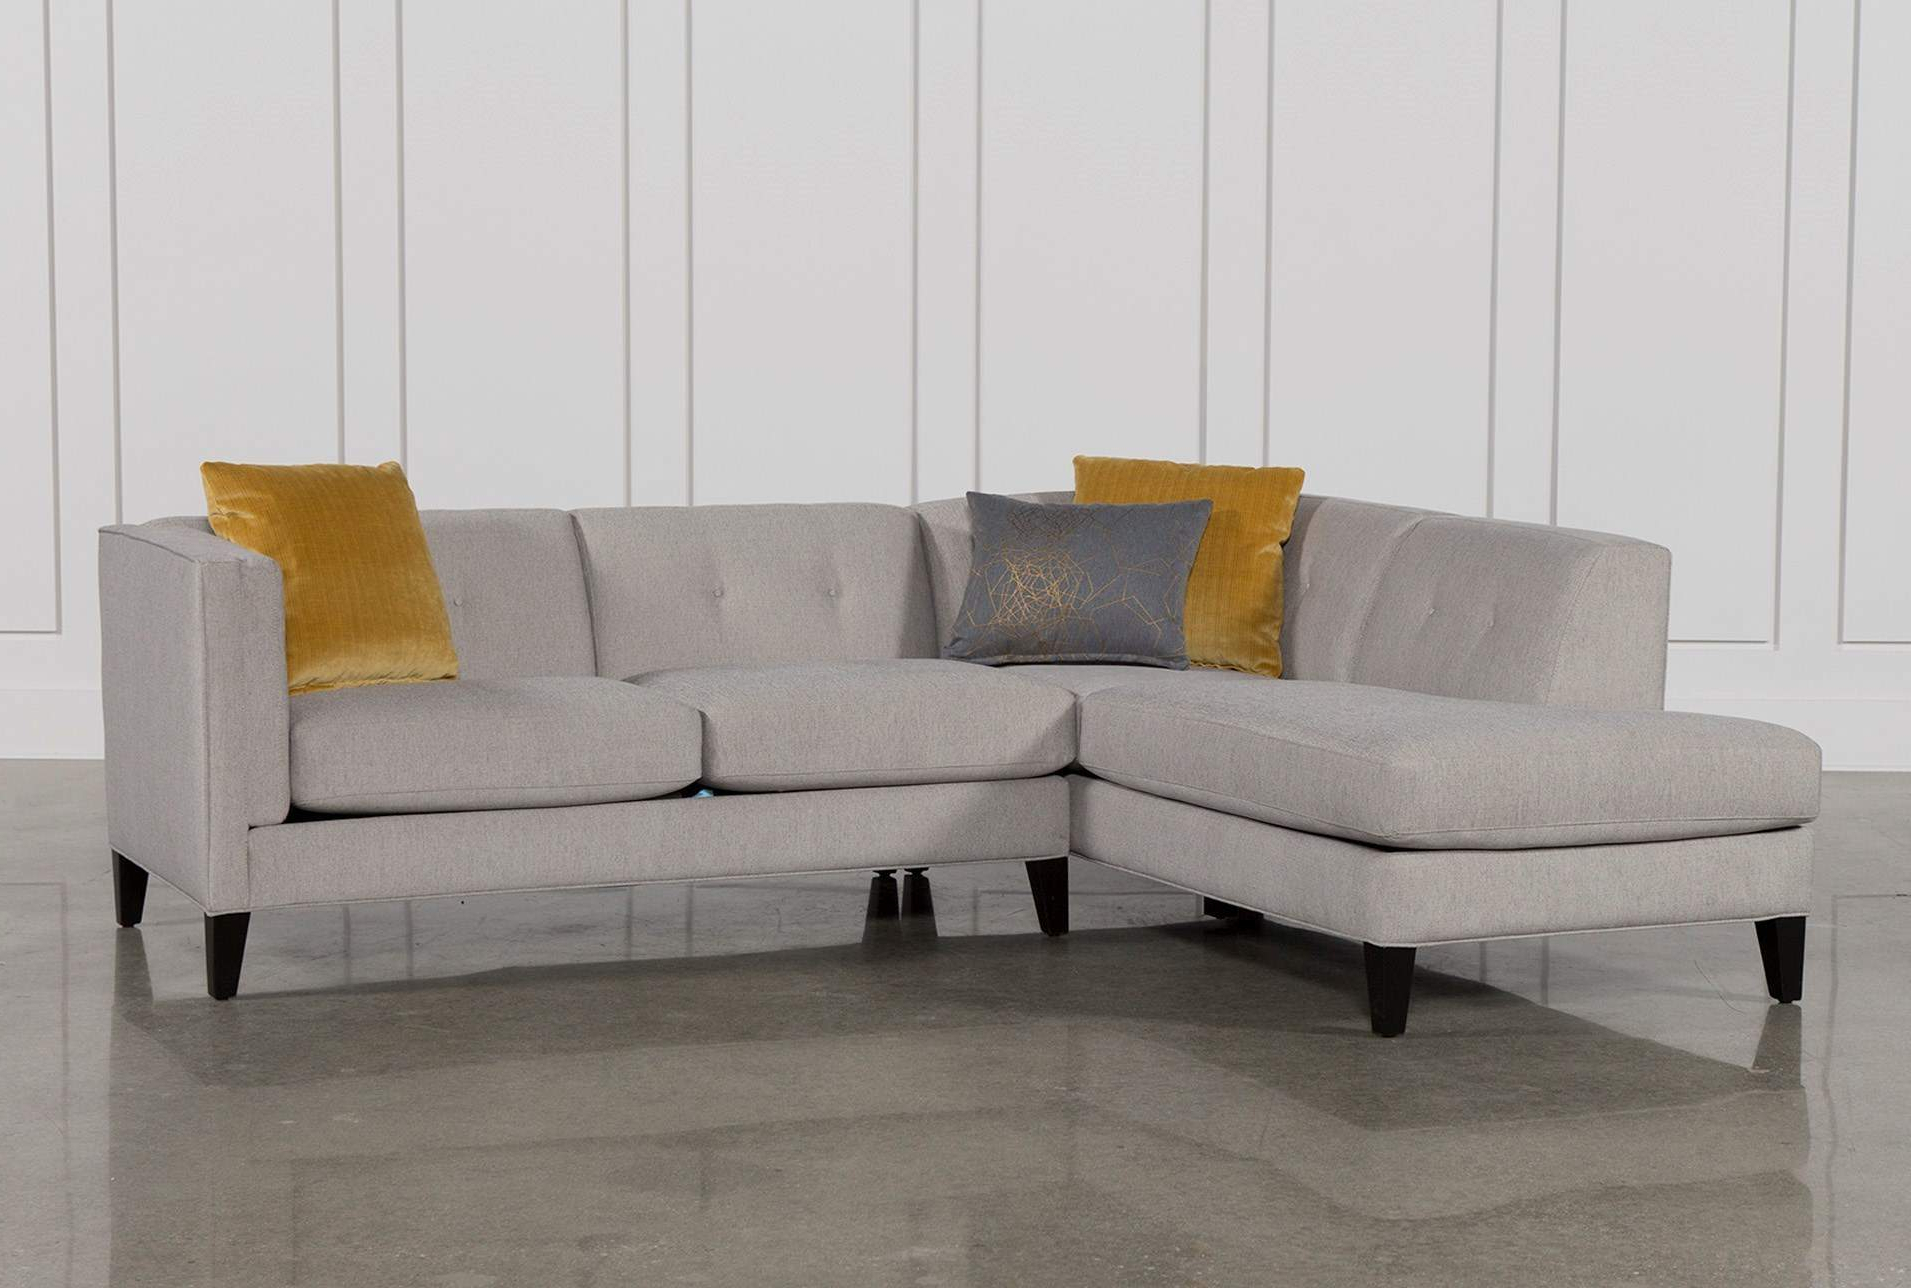 Shapely Small Sectional Sofas Living Spaces Couch Locks Display Throughout Preferred Adeline 3 Piece Sectionals (View 18 of 20)